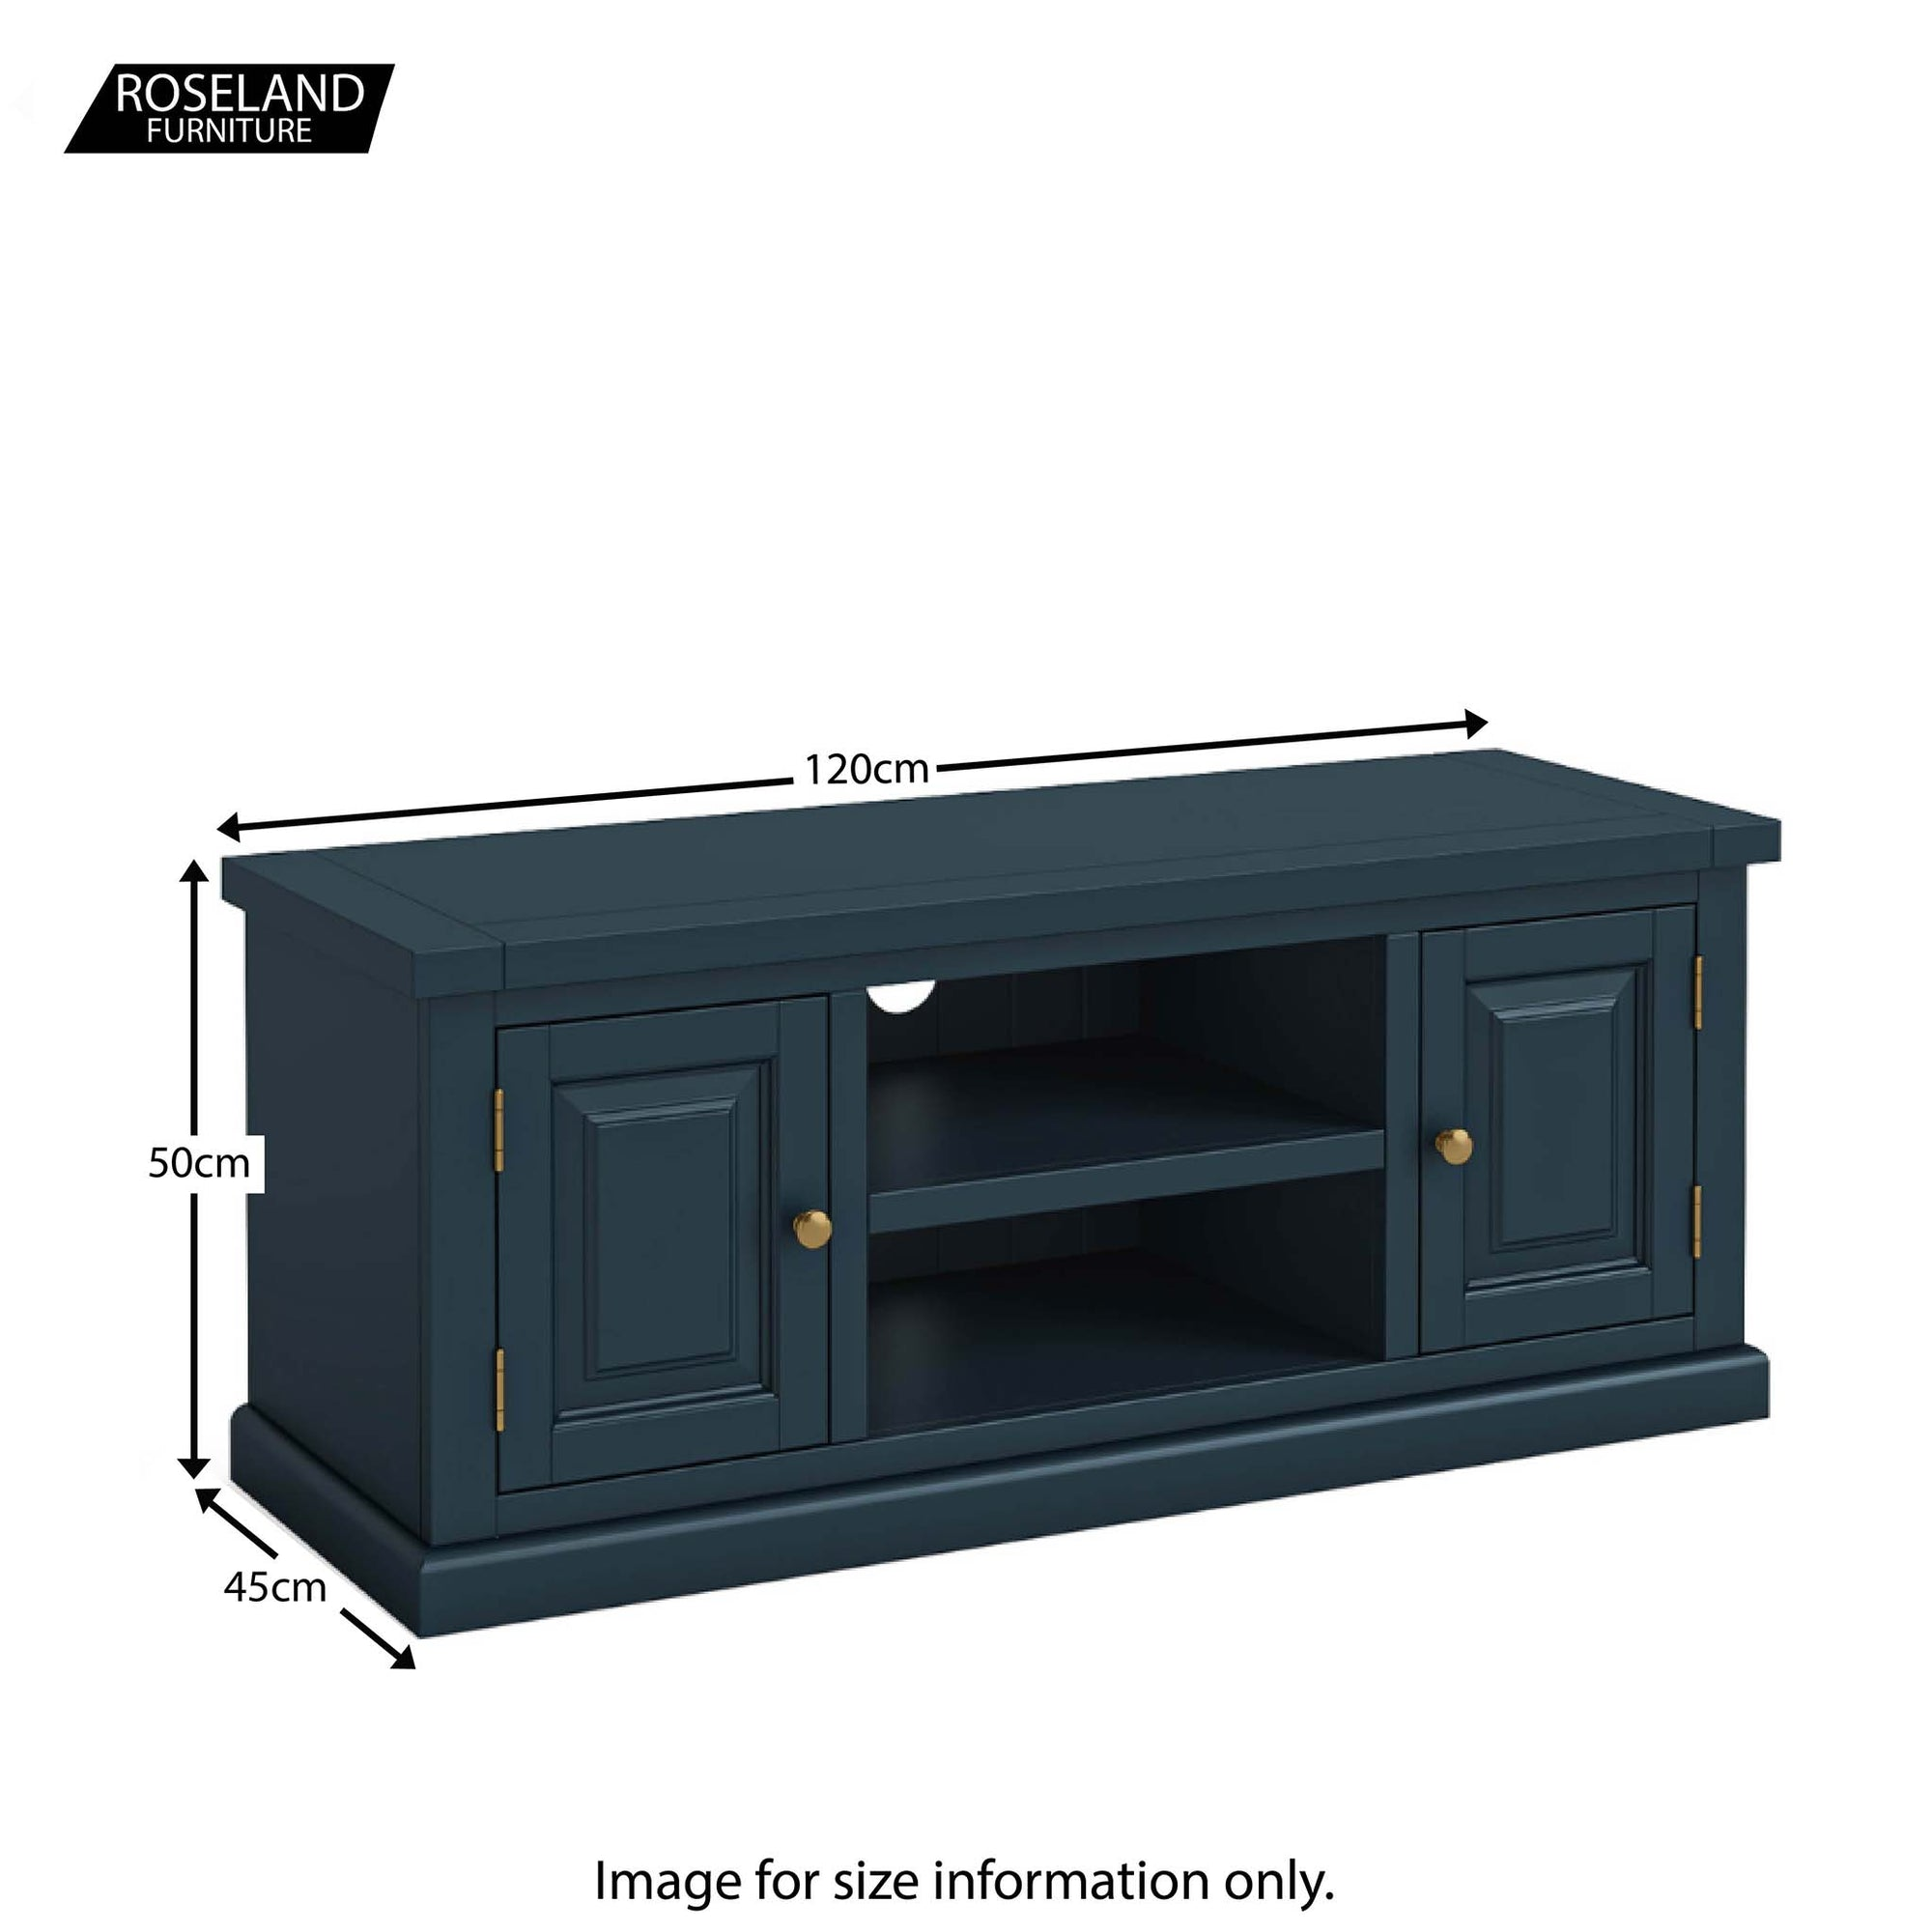 Cheltenham Blue Large Tv Stand Up To 55 Screens Roseland Furniture